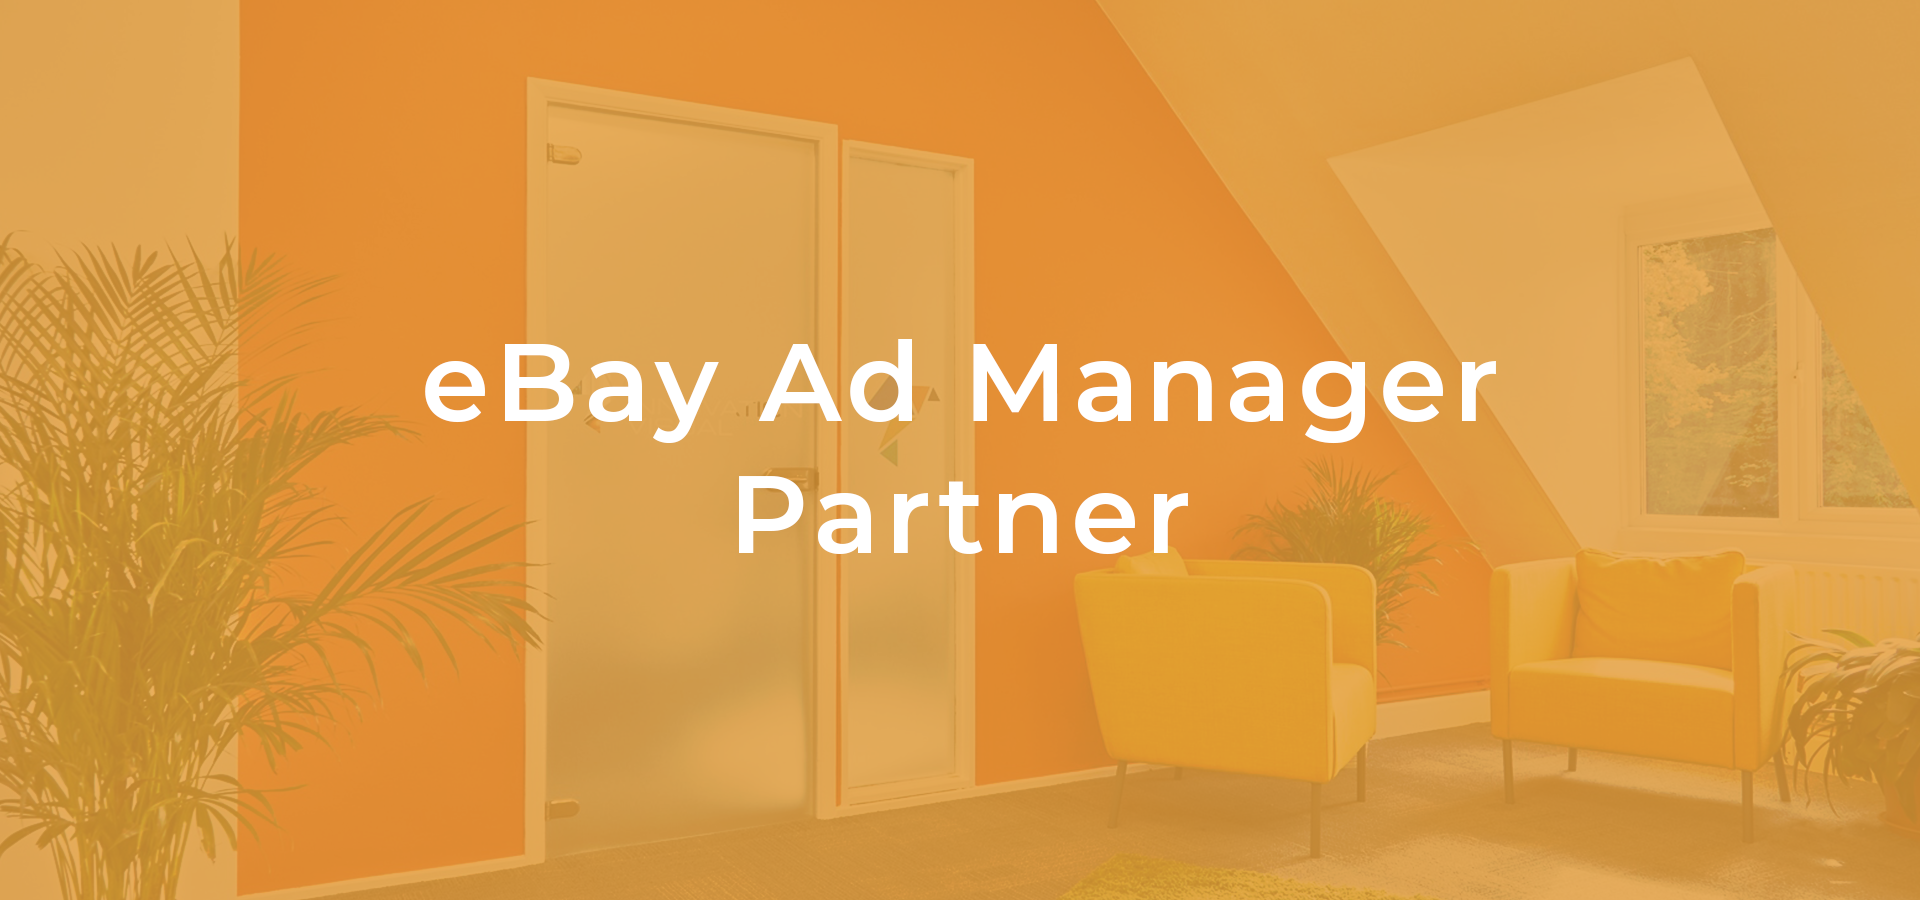 Innovation-Visual-eBay-Ad-Manager-Partner-Banner